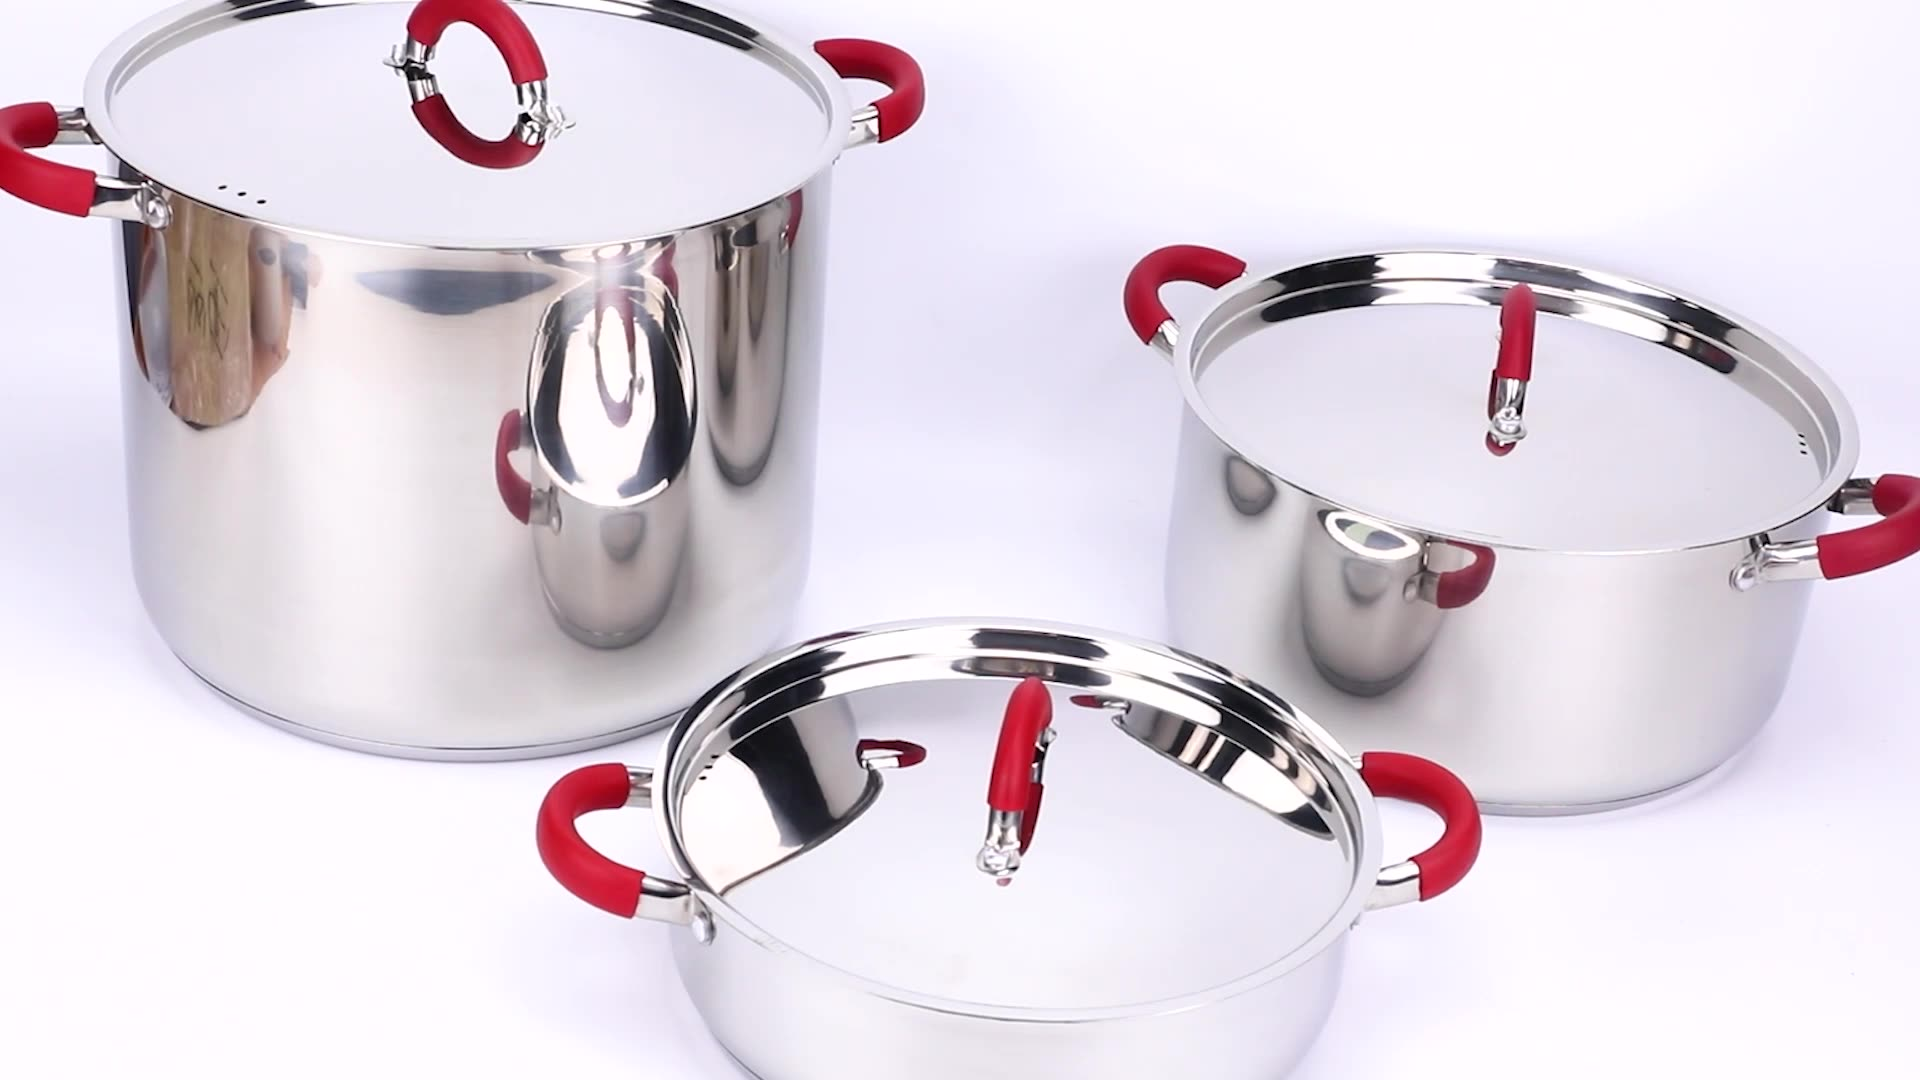 High large stainless steel pot with heat resistant handles MSF-3195